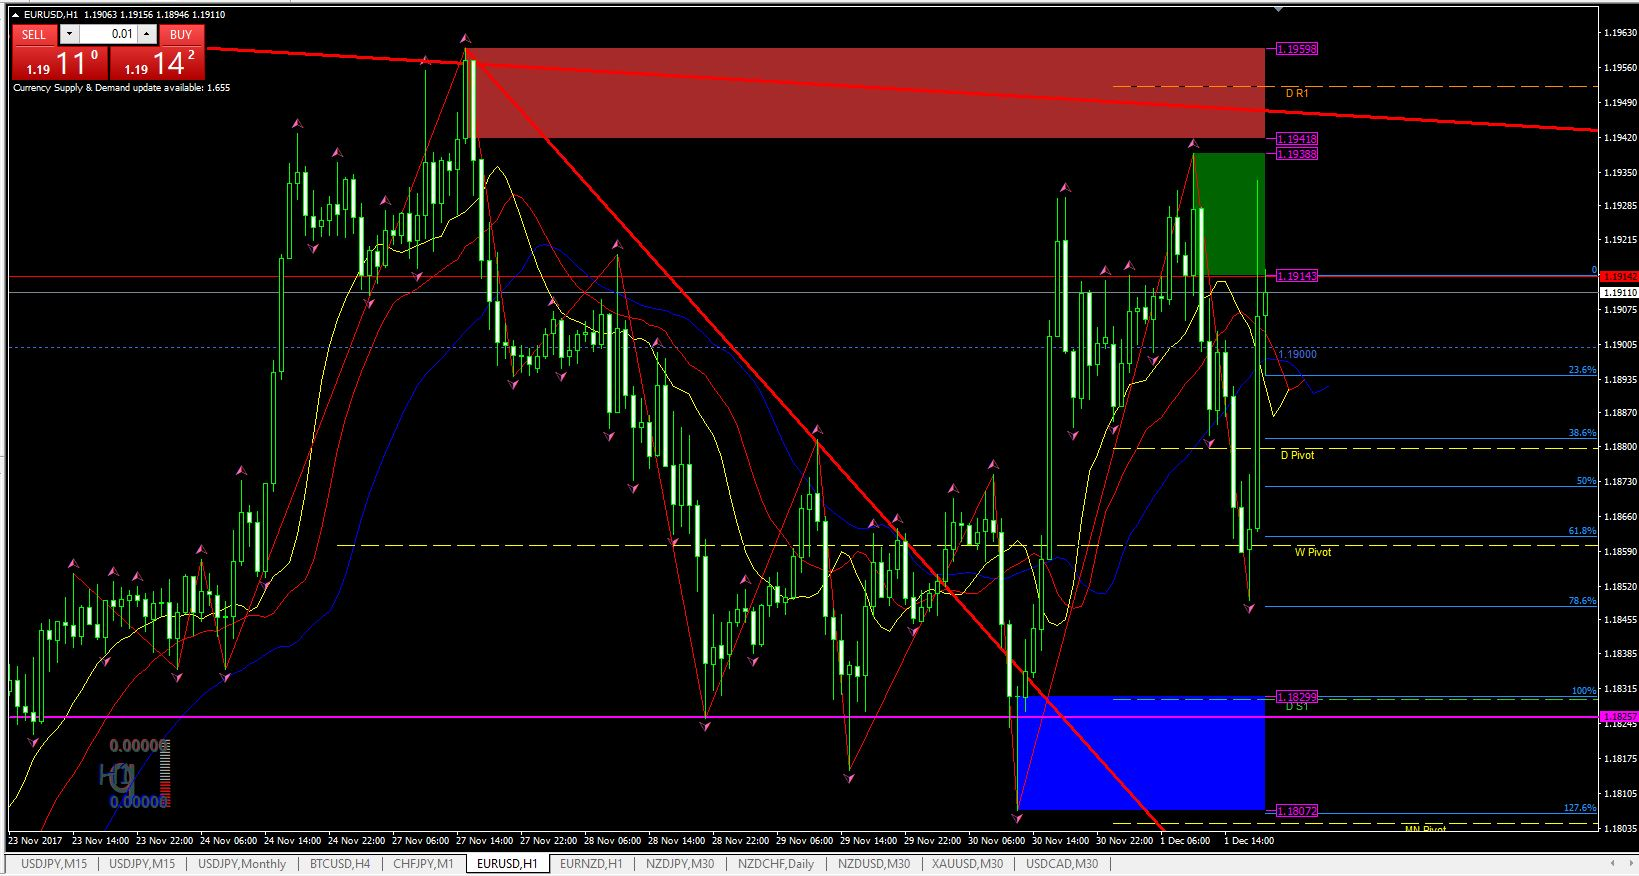 Forexlines ver. 7 indicators and template